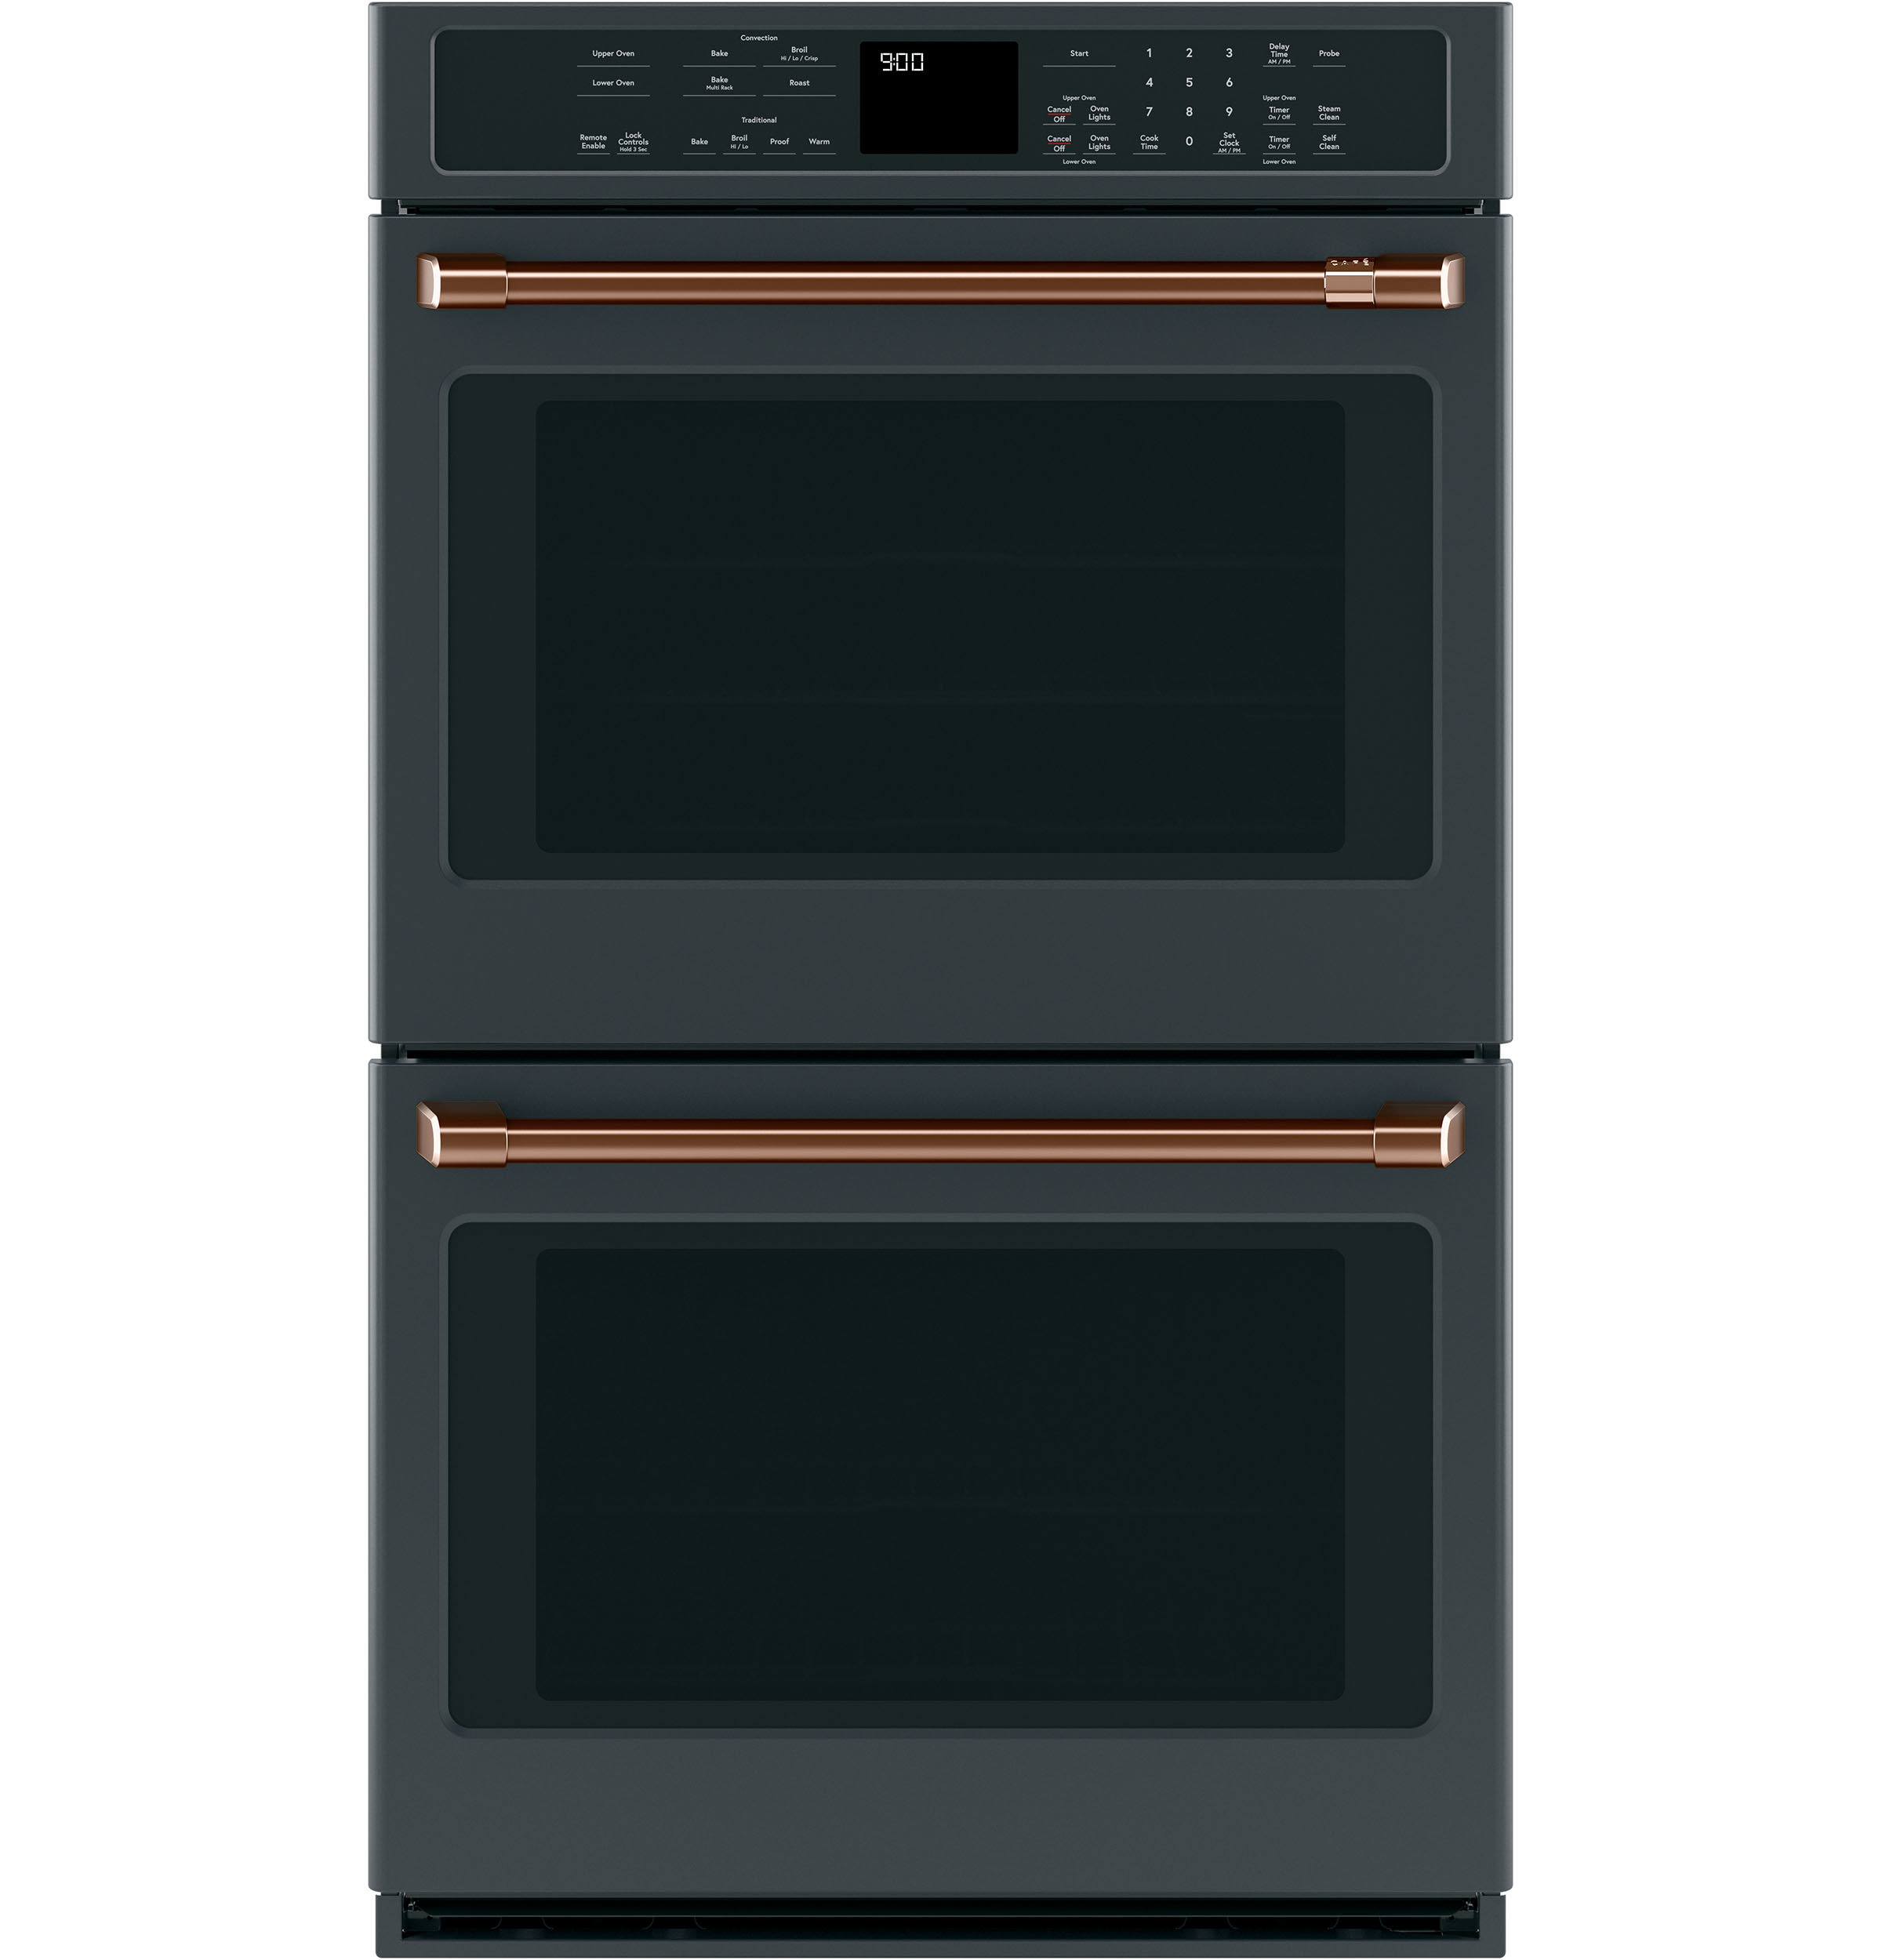 "Model: CXWD0H0PMCU | Cafe 2 - 30"" Double Wall Oven Handles - Brushed Copper"